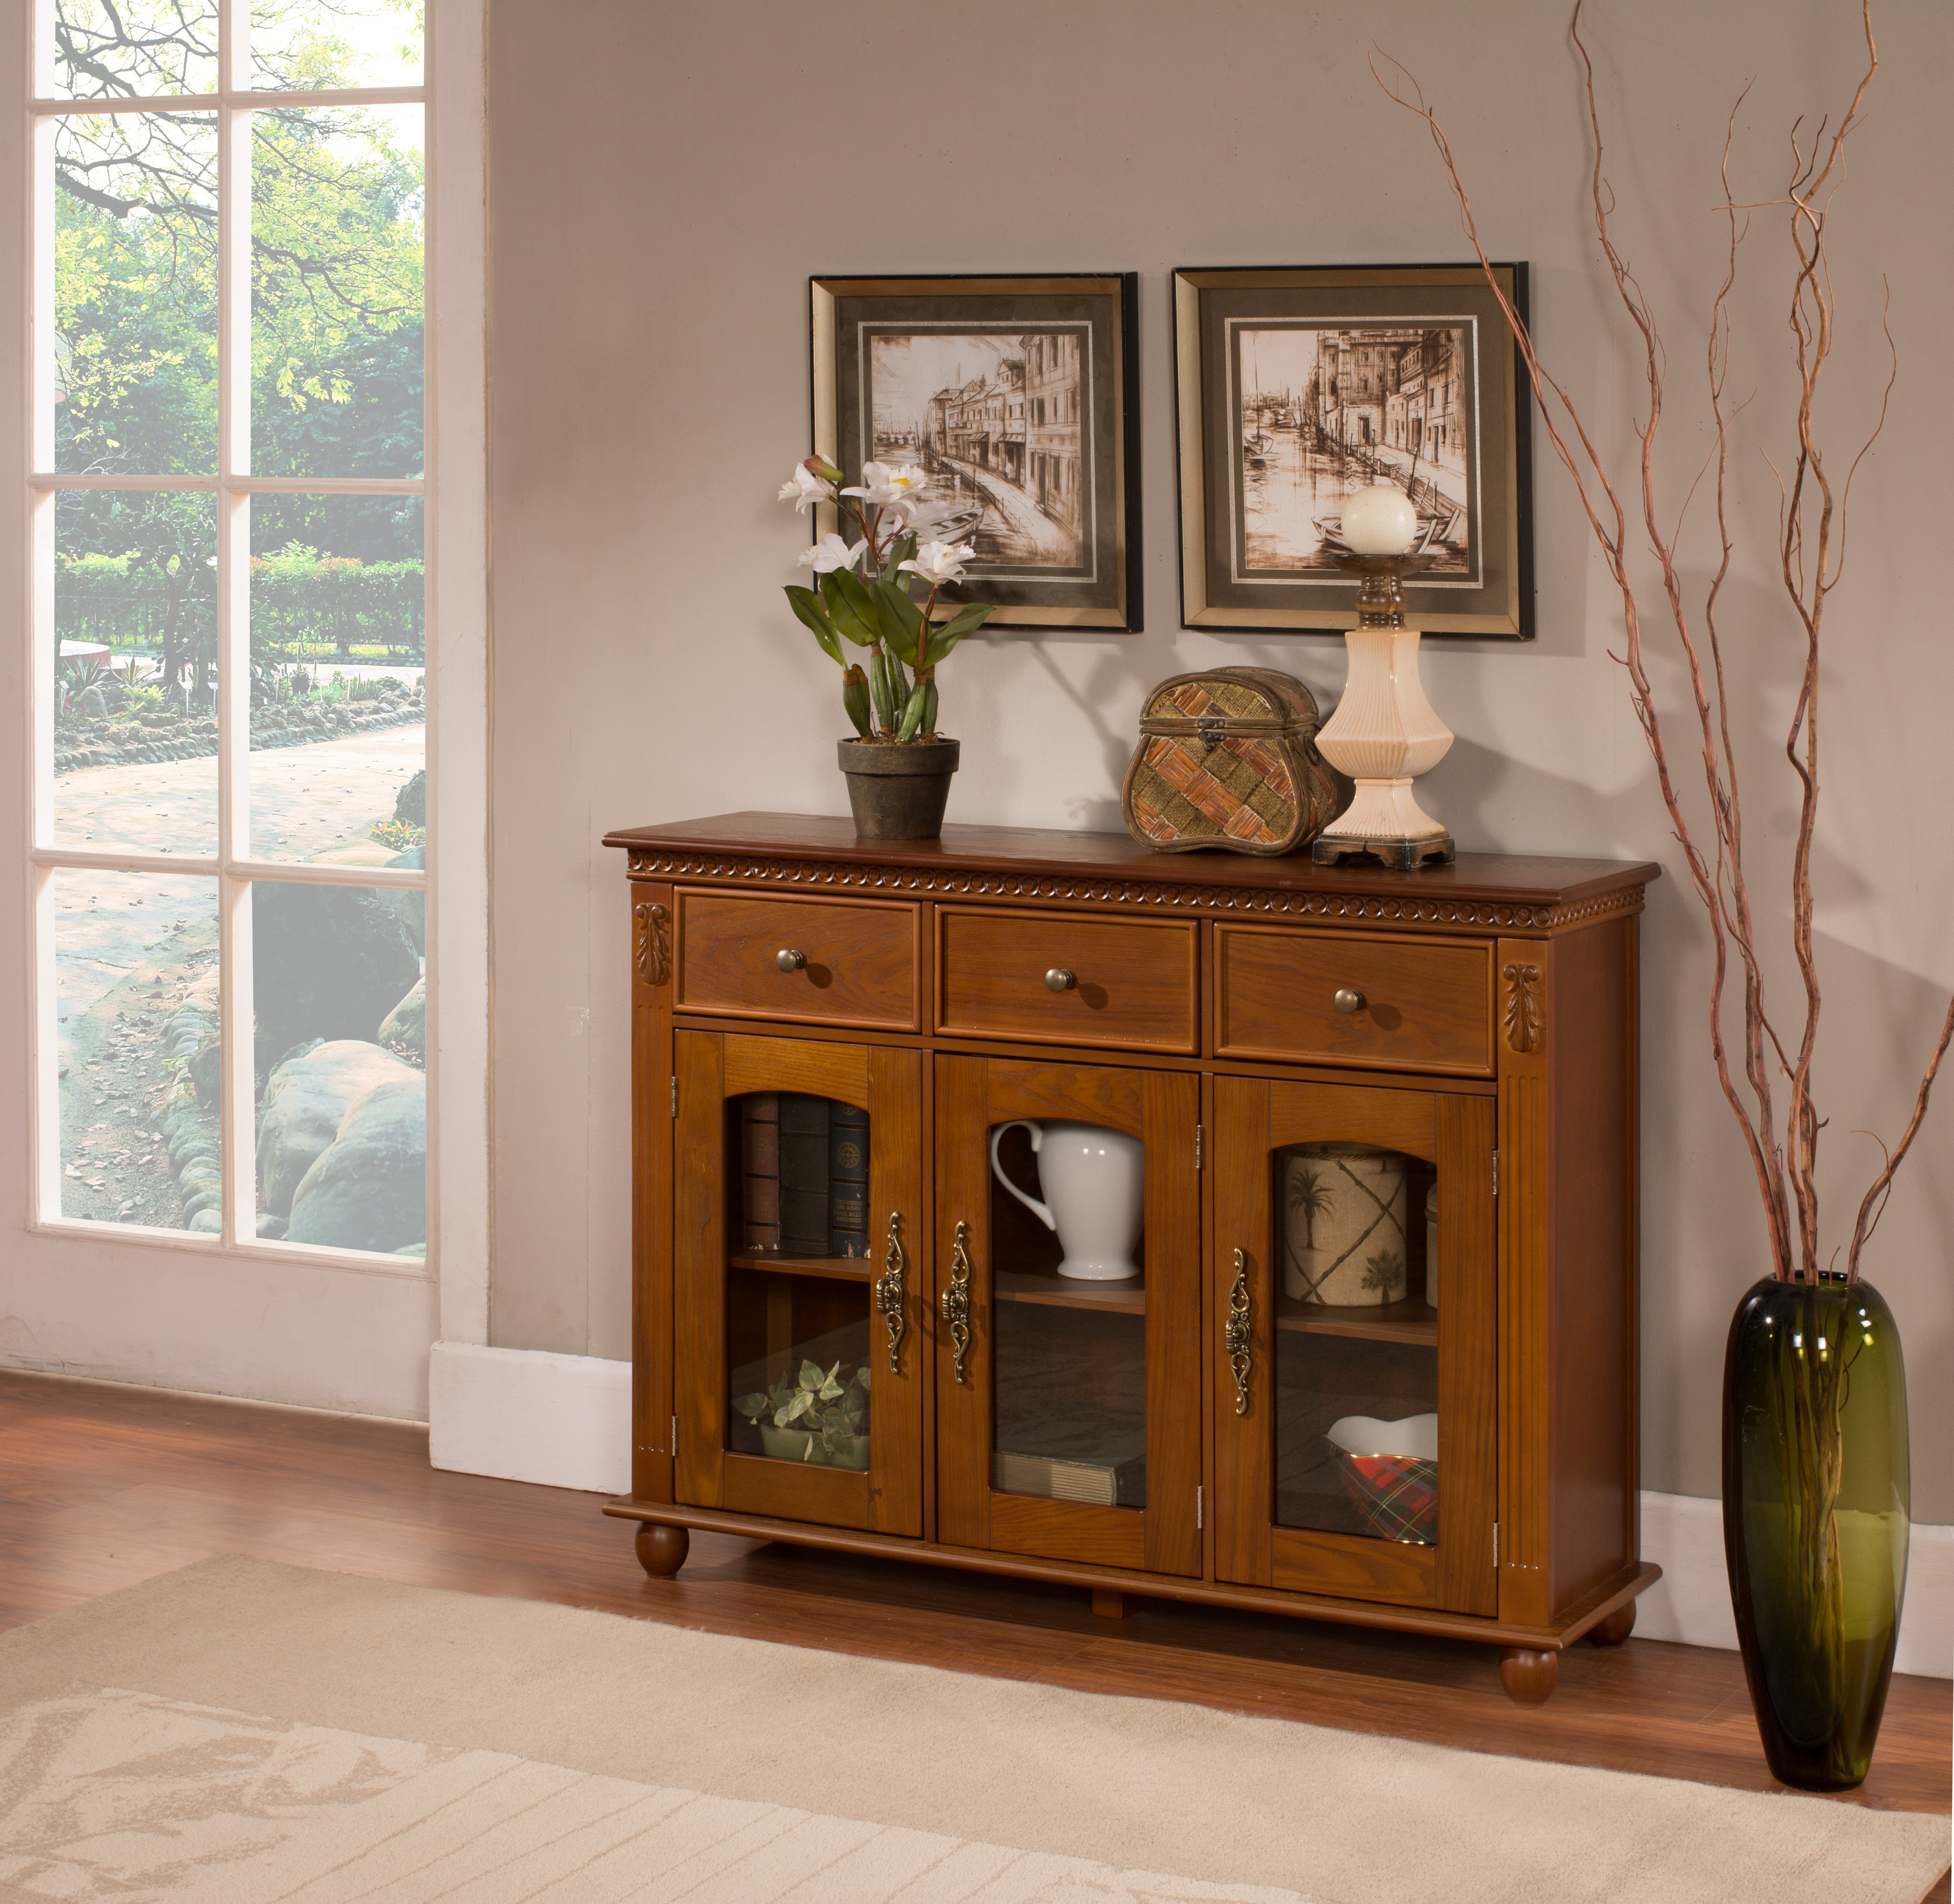 William Walnut Wood Contemporary Sideboard Buffet Console For Contemporary Wooden Buffets With One Side Door Storage Cabinets And Two Drawers (View 2 of 30)